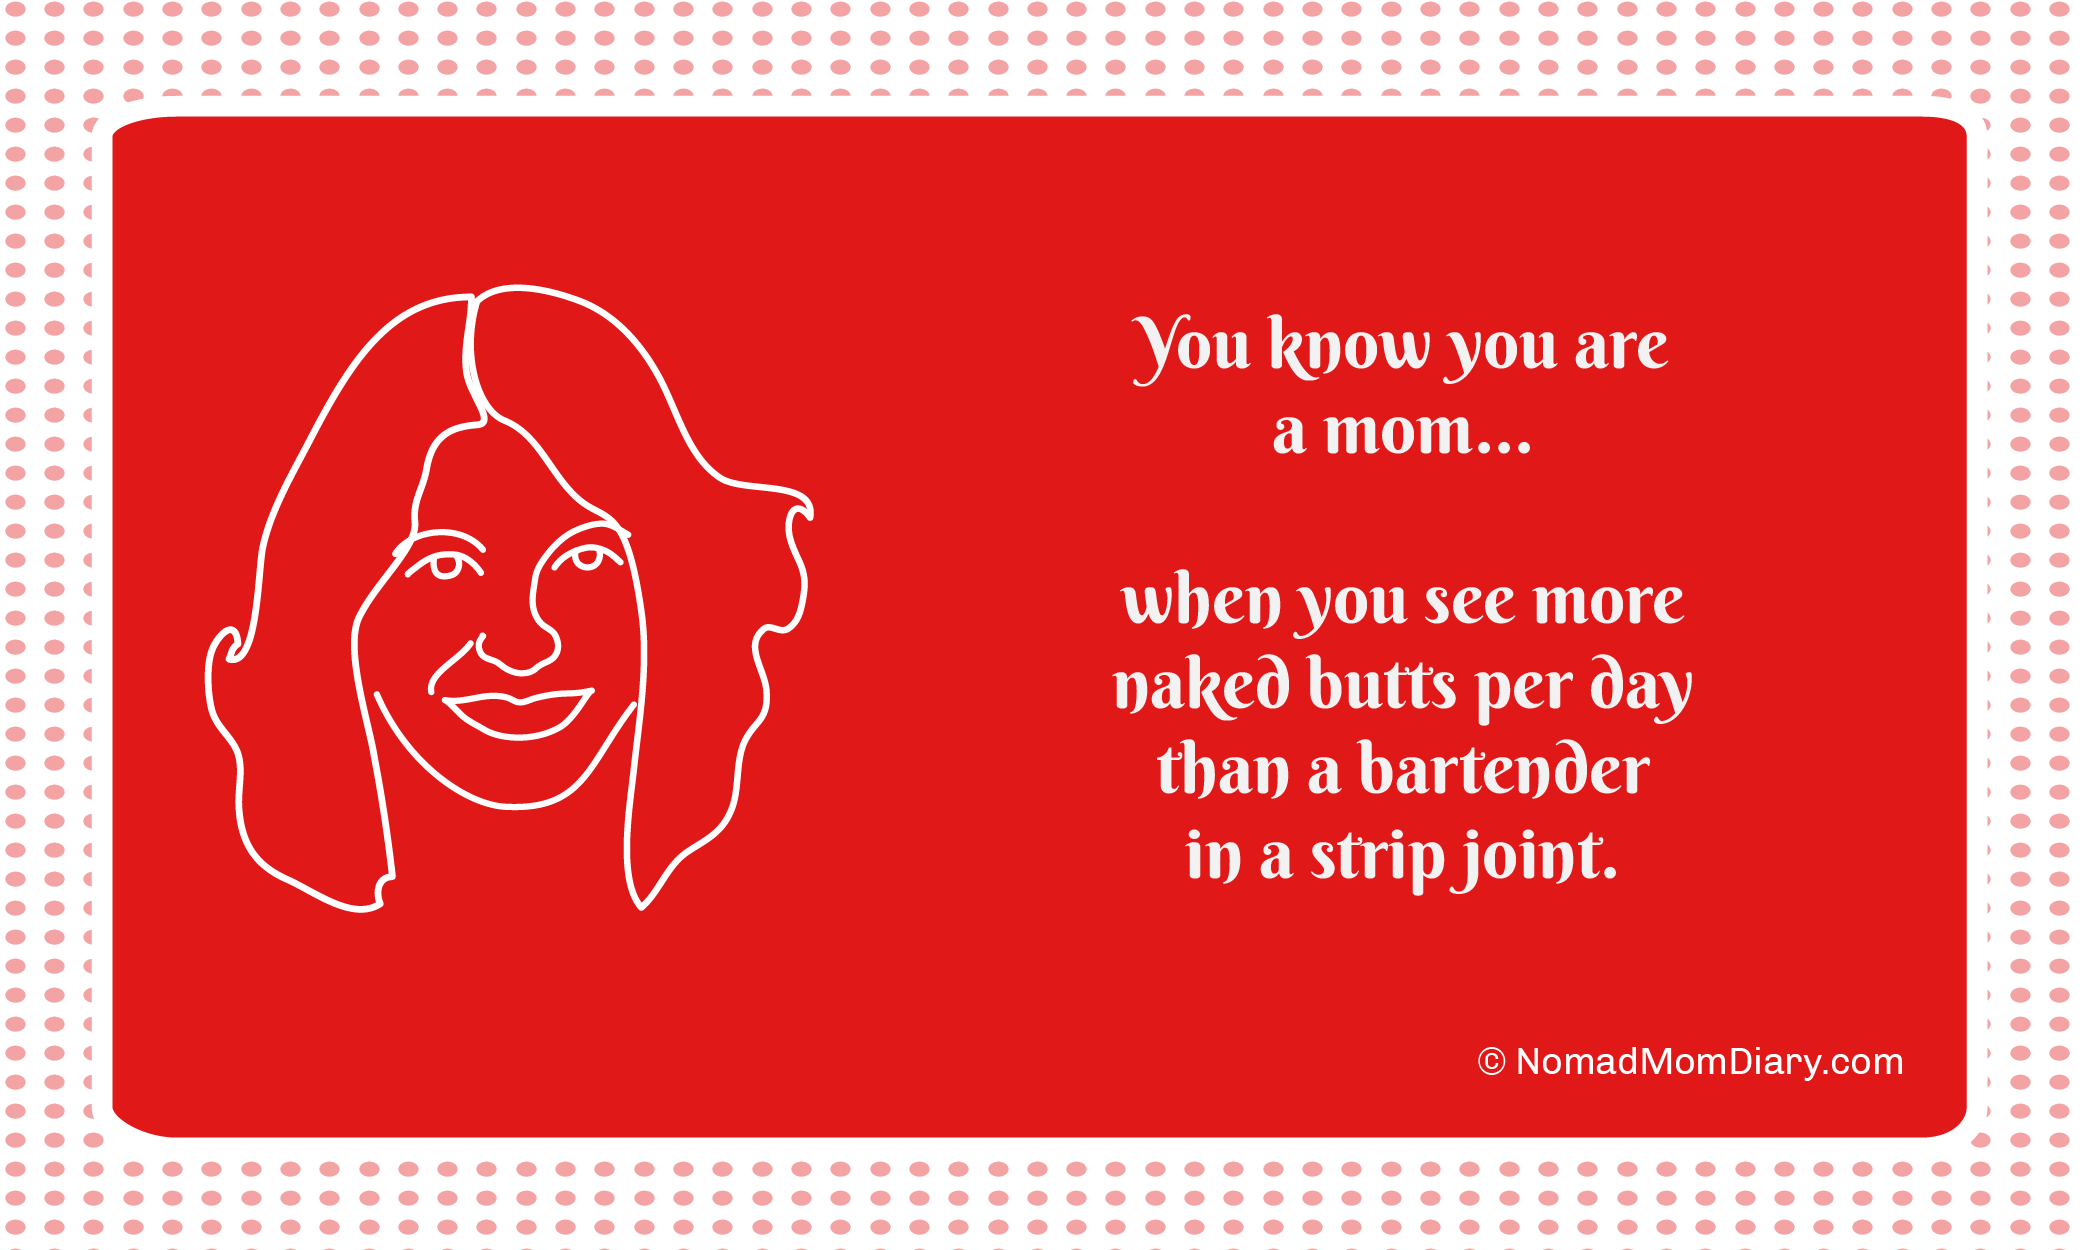 You know you are a mom when you see more naked butts per day than a bartender at a strip joint.